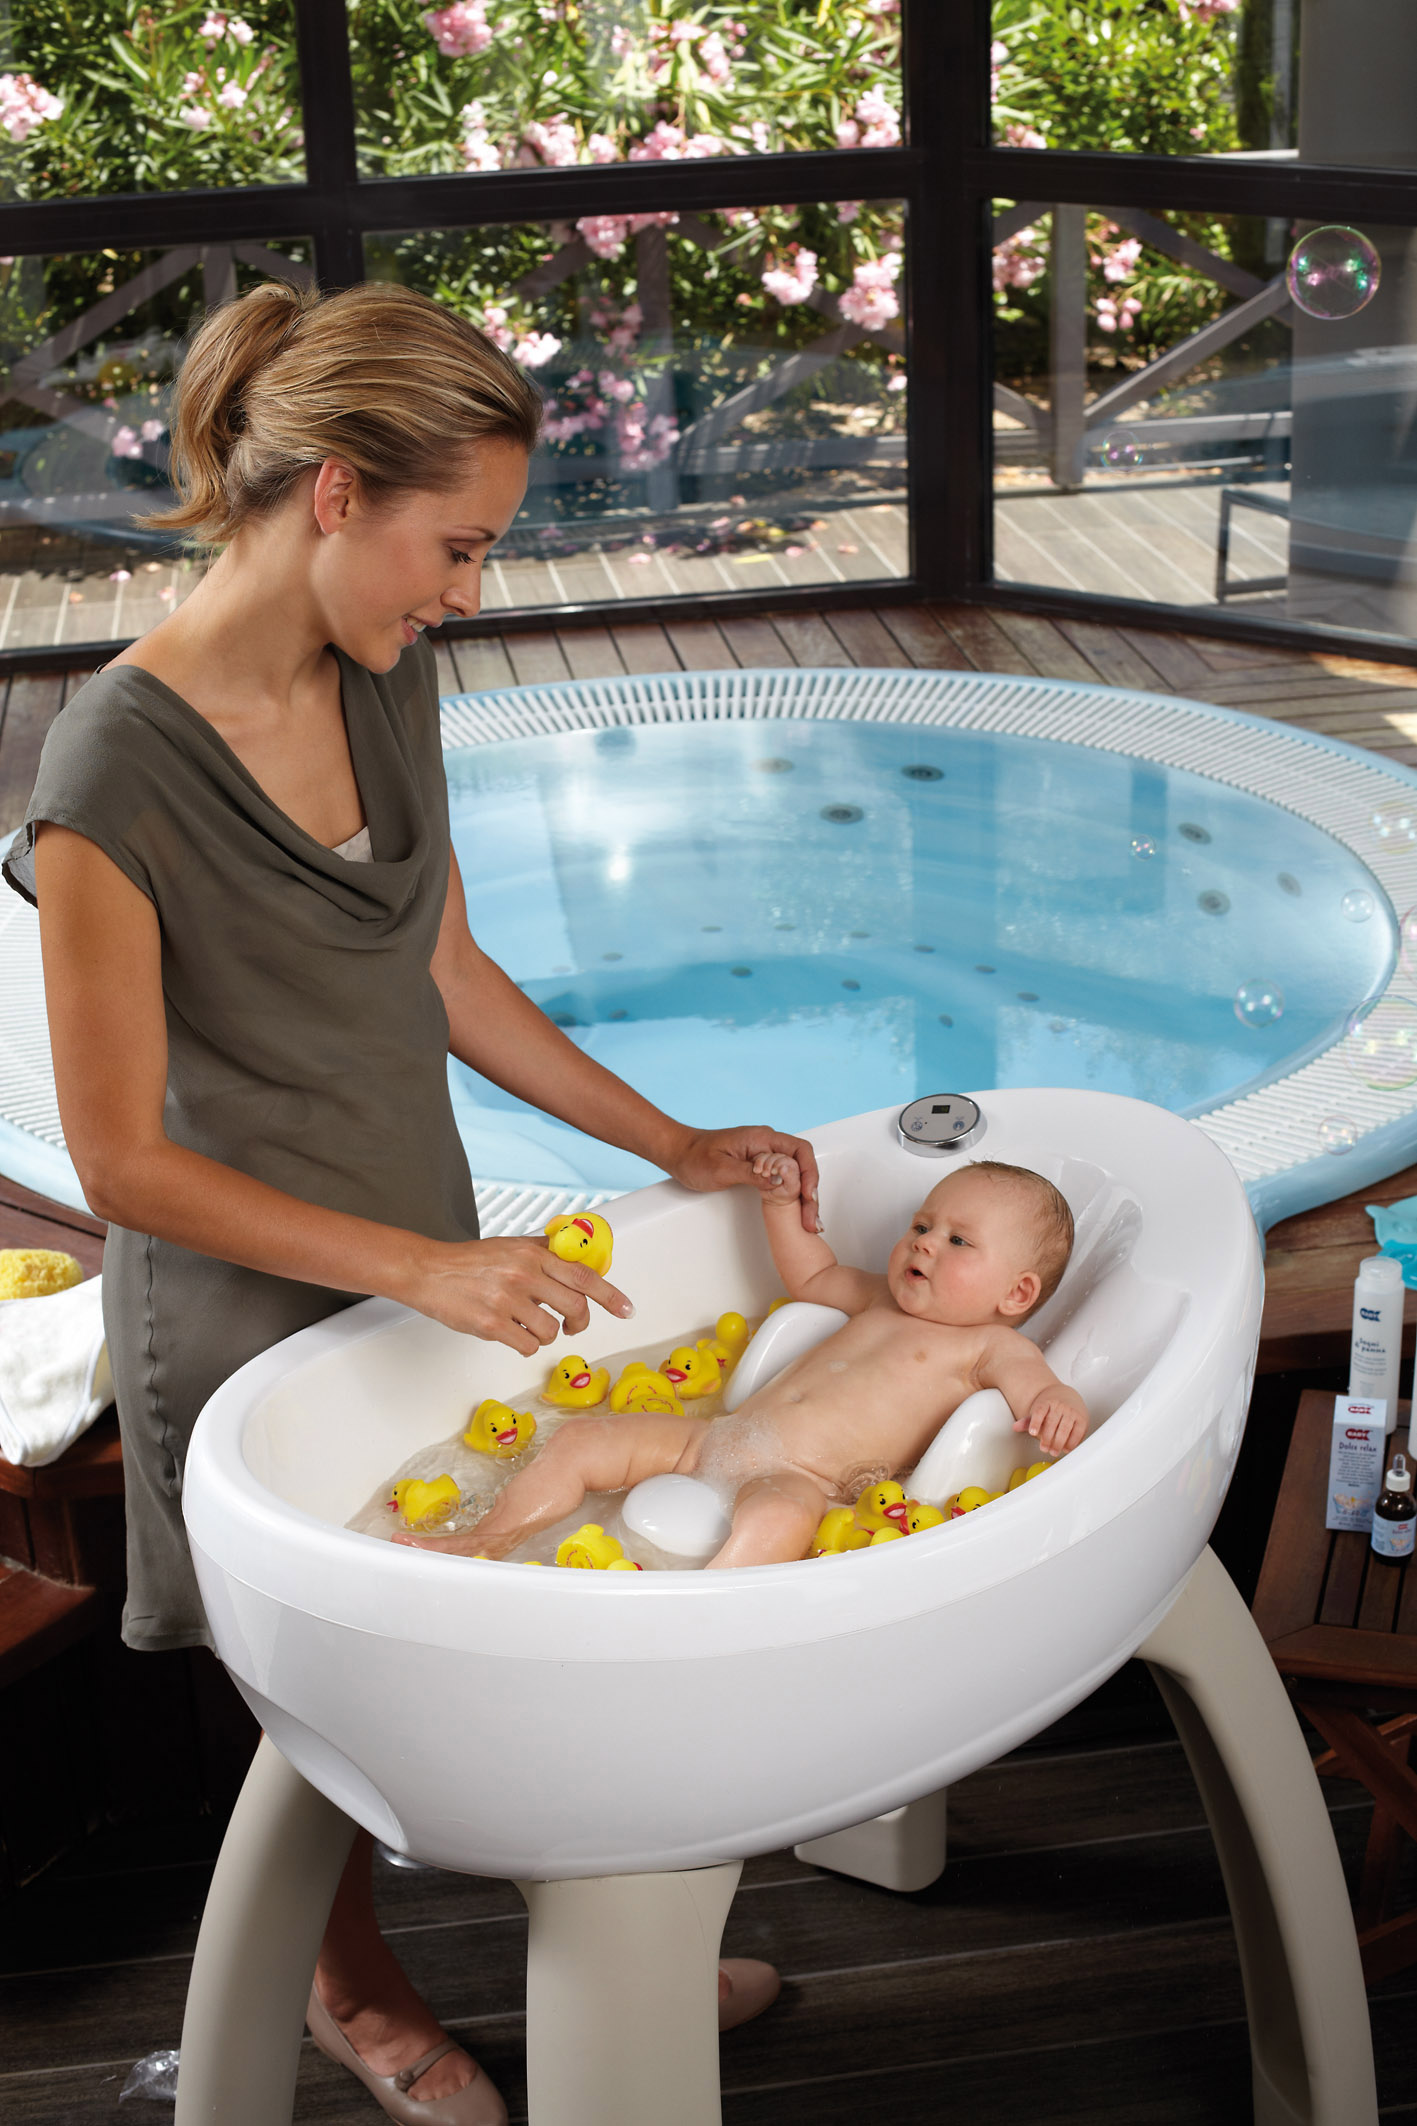 the magicbath tub 2 growing your baby growing your baby. Black Bedroom Furniture Sets. Home Design Ideas